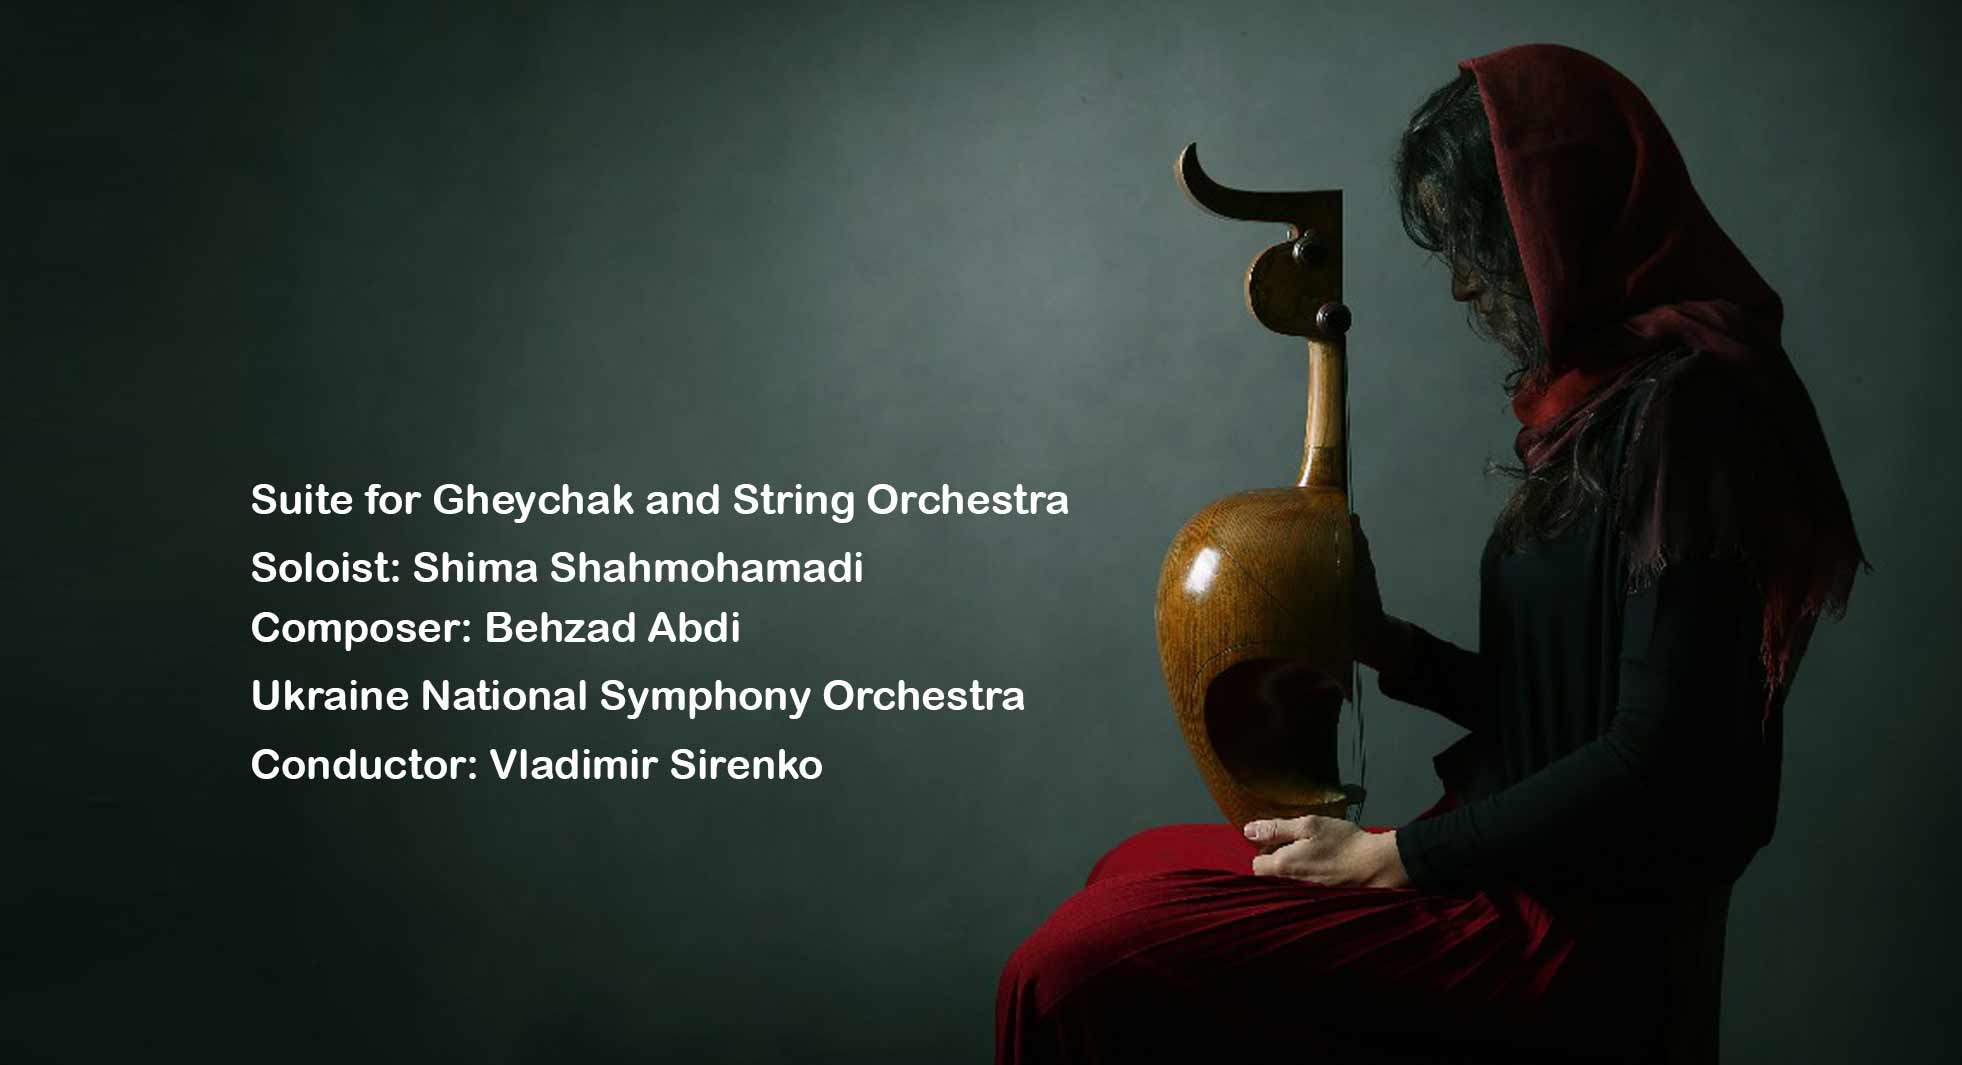 Suite for Gheychak and String Orchestra